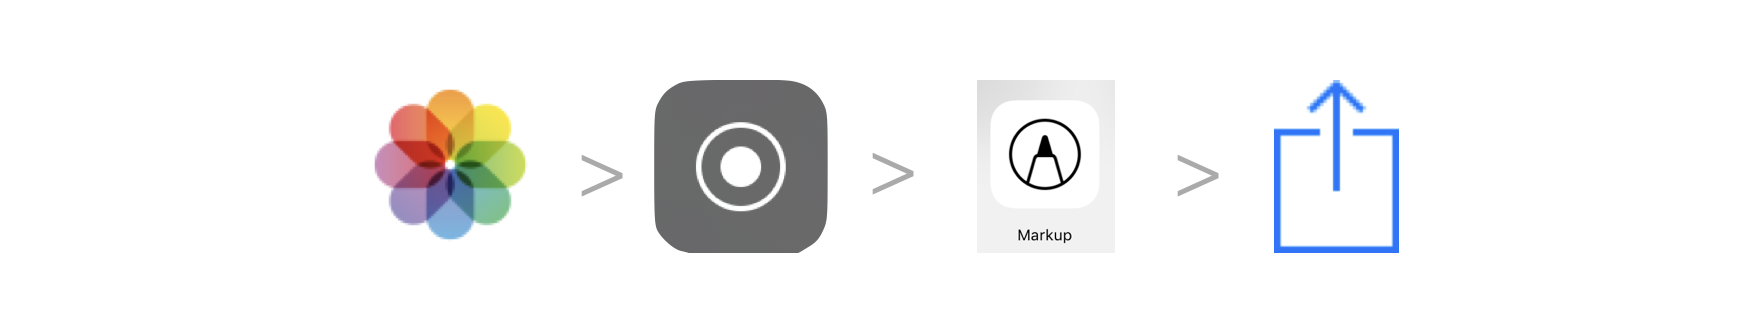 Workflow of apps and tools. Photos, screen record, markup, share